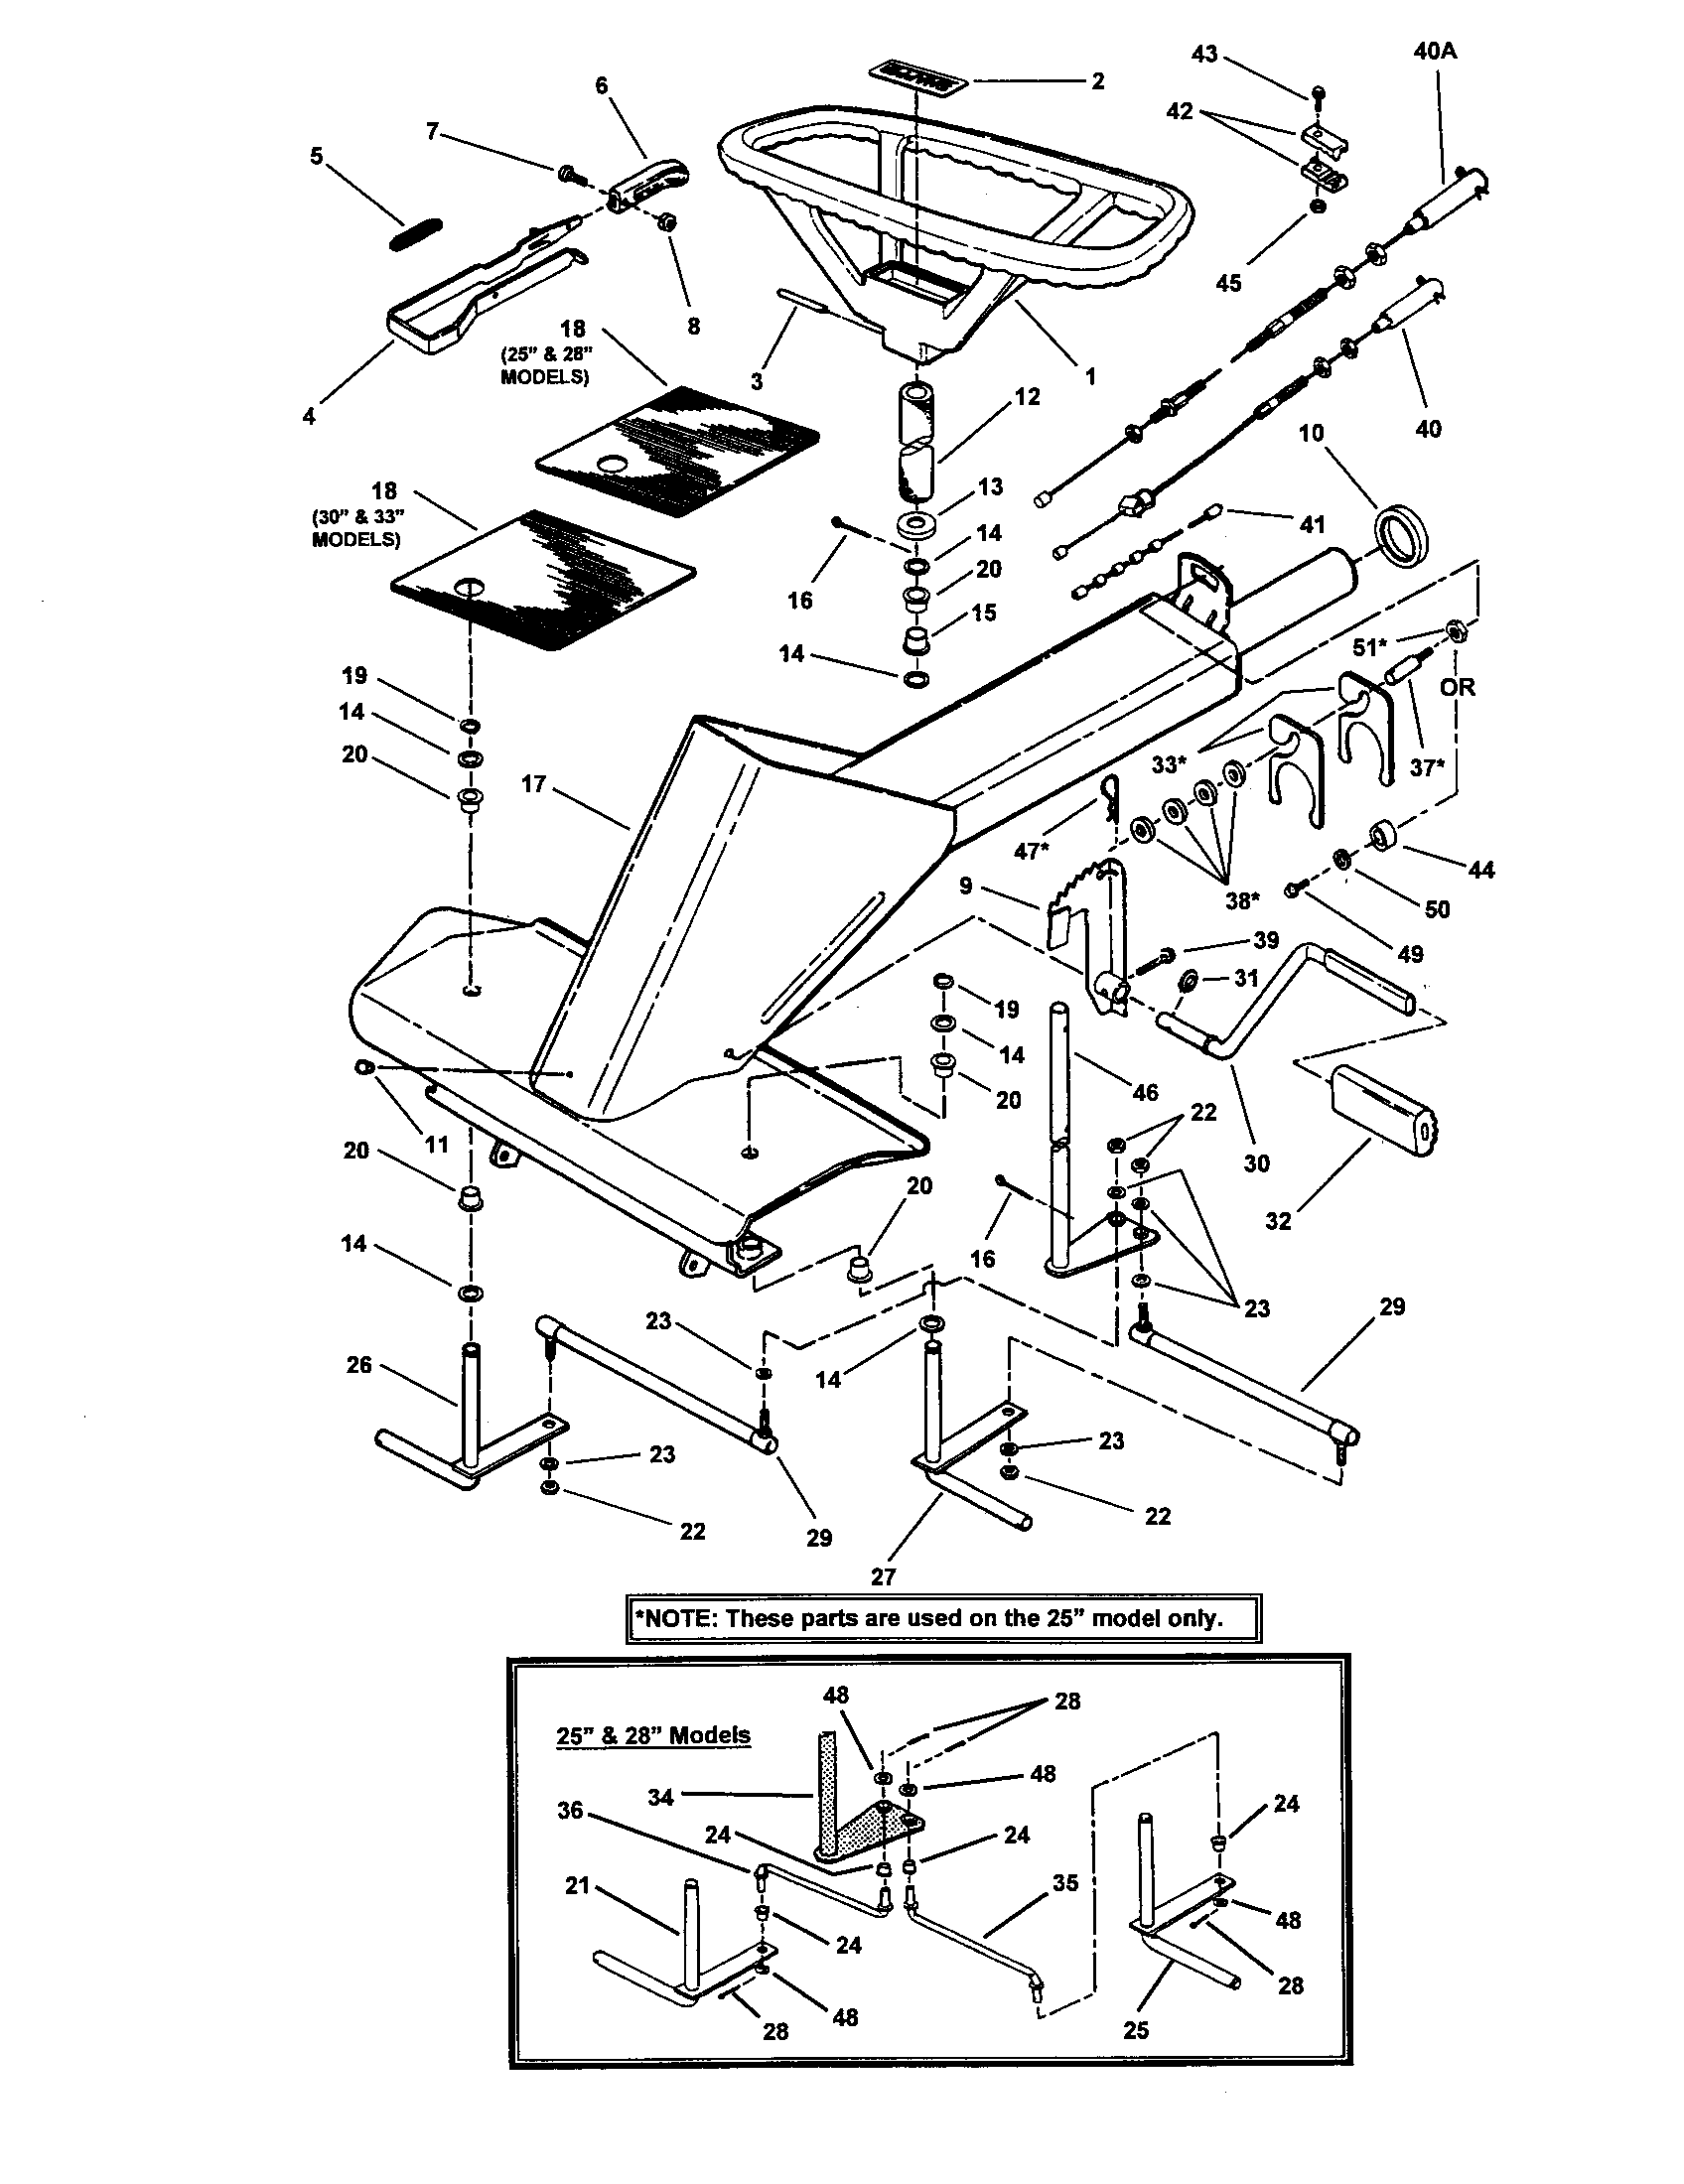 snapper mower wiring harness ew 9071  lawn mowers belt routing diagram also snapper riding lawn  lawn mowers belt routing diagram also